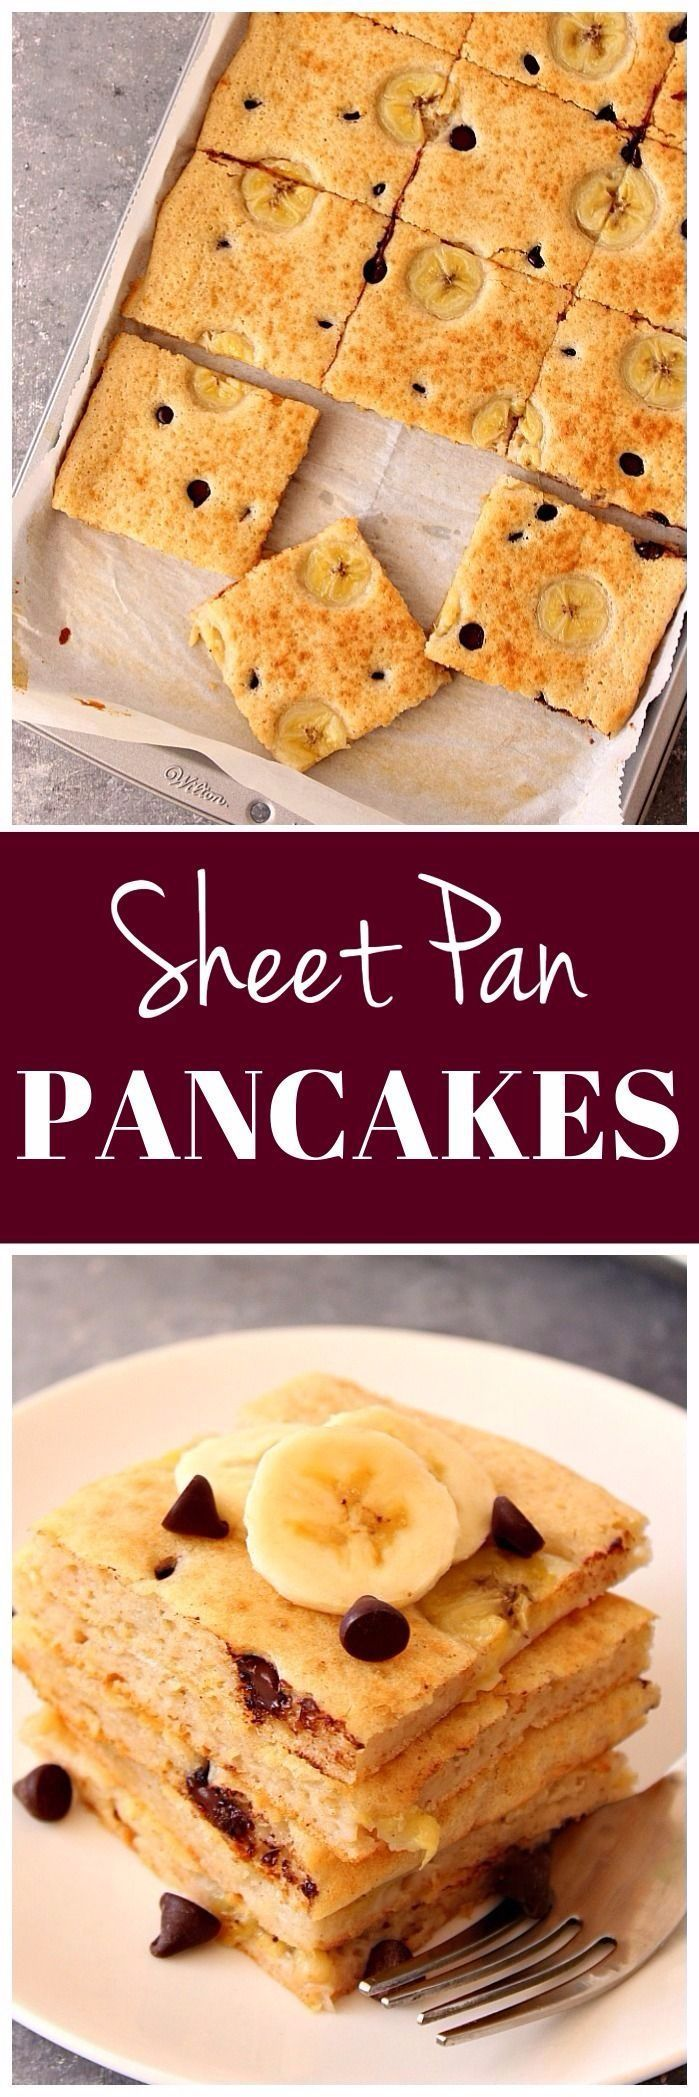 Sheet Pan Pancakes Recipe - the fastest way to make pancakes! www.crunchycreamysweet.com